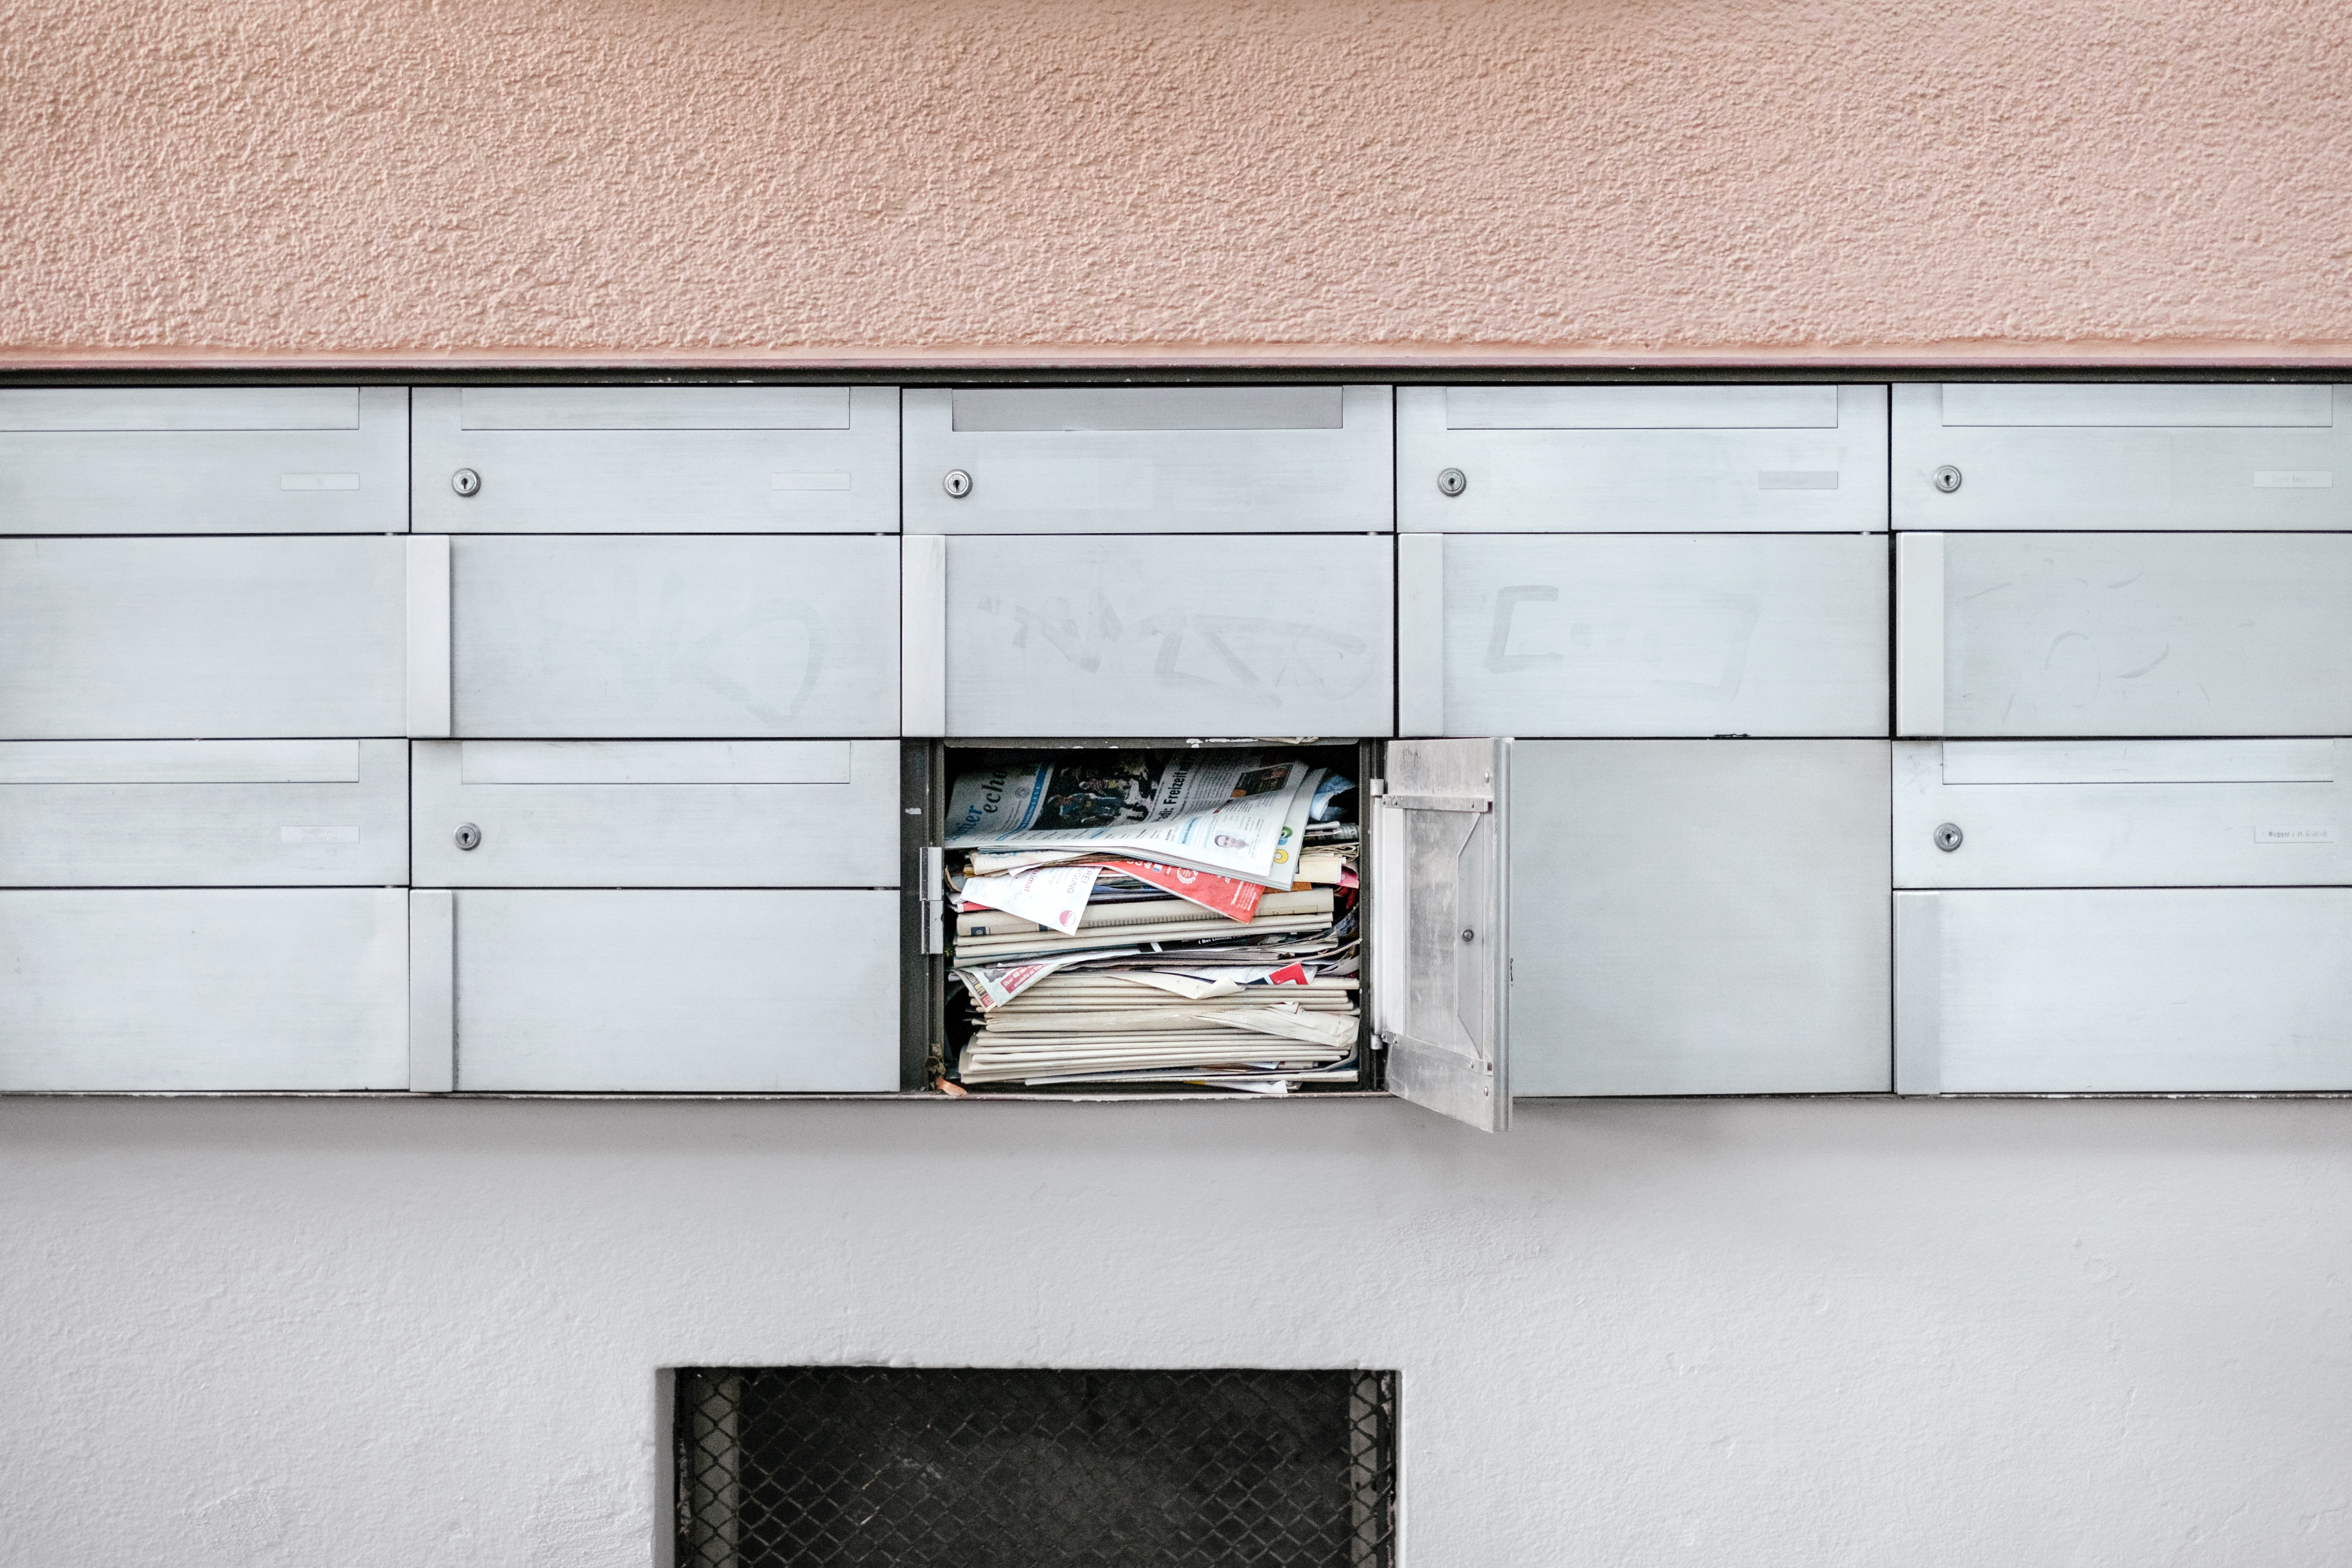 Letters in a direct mail campaign